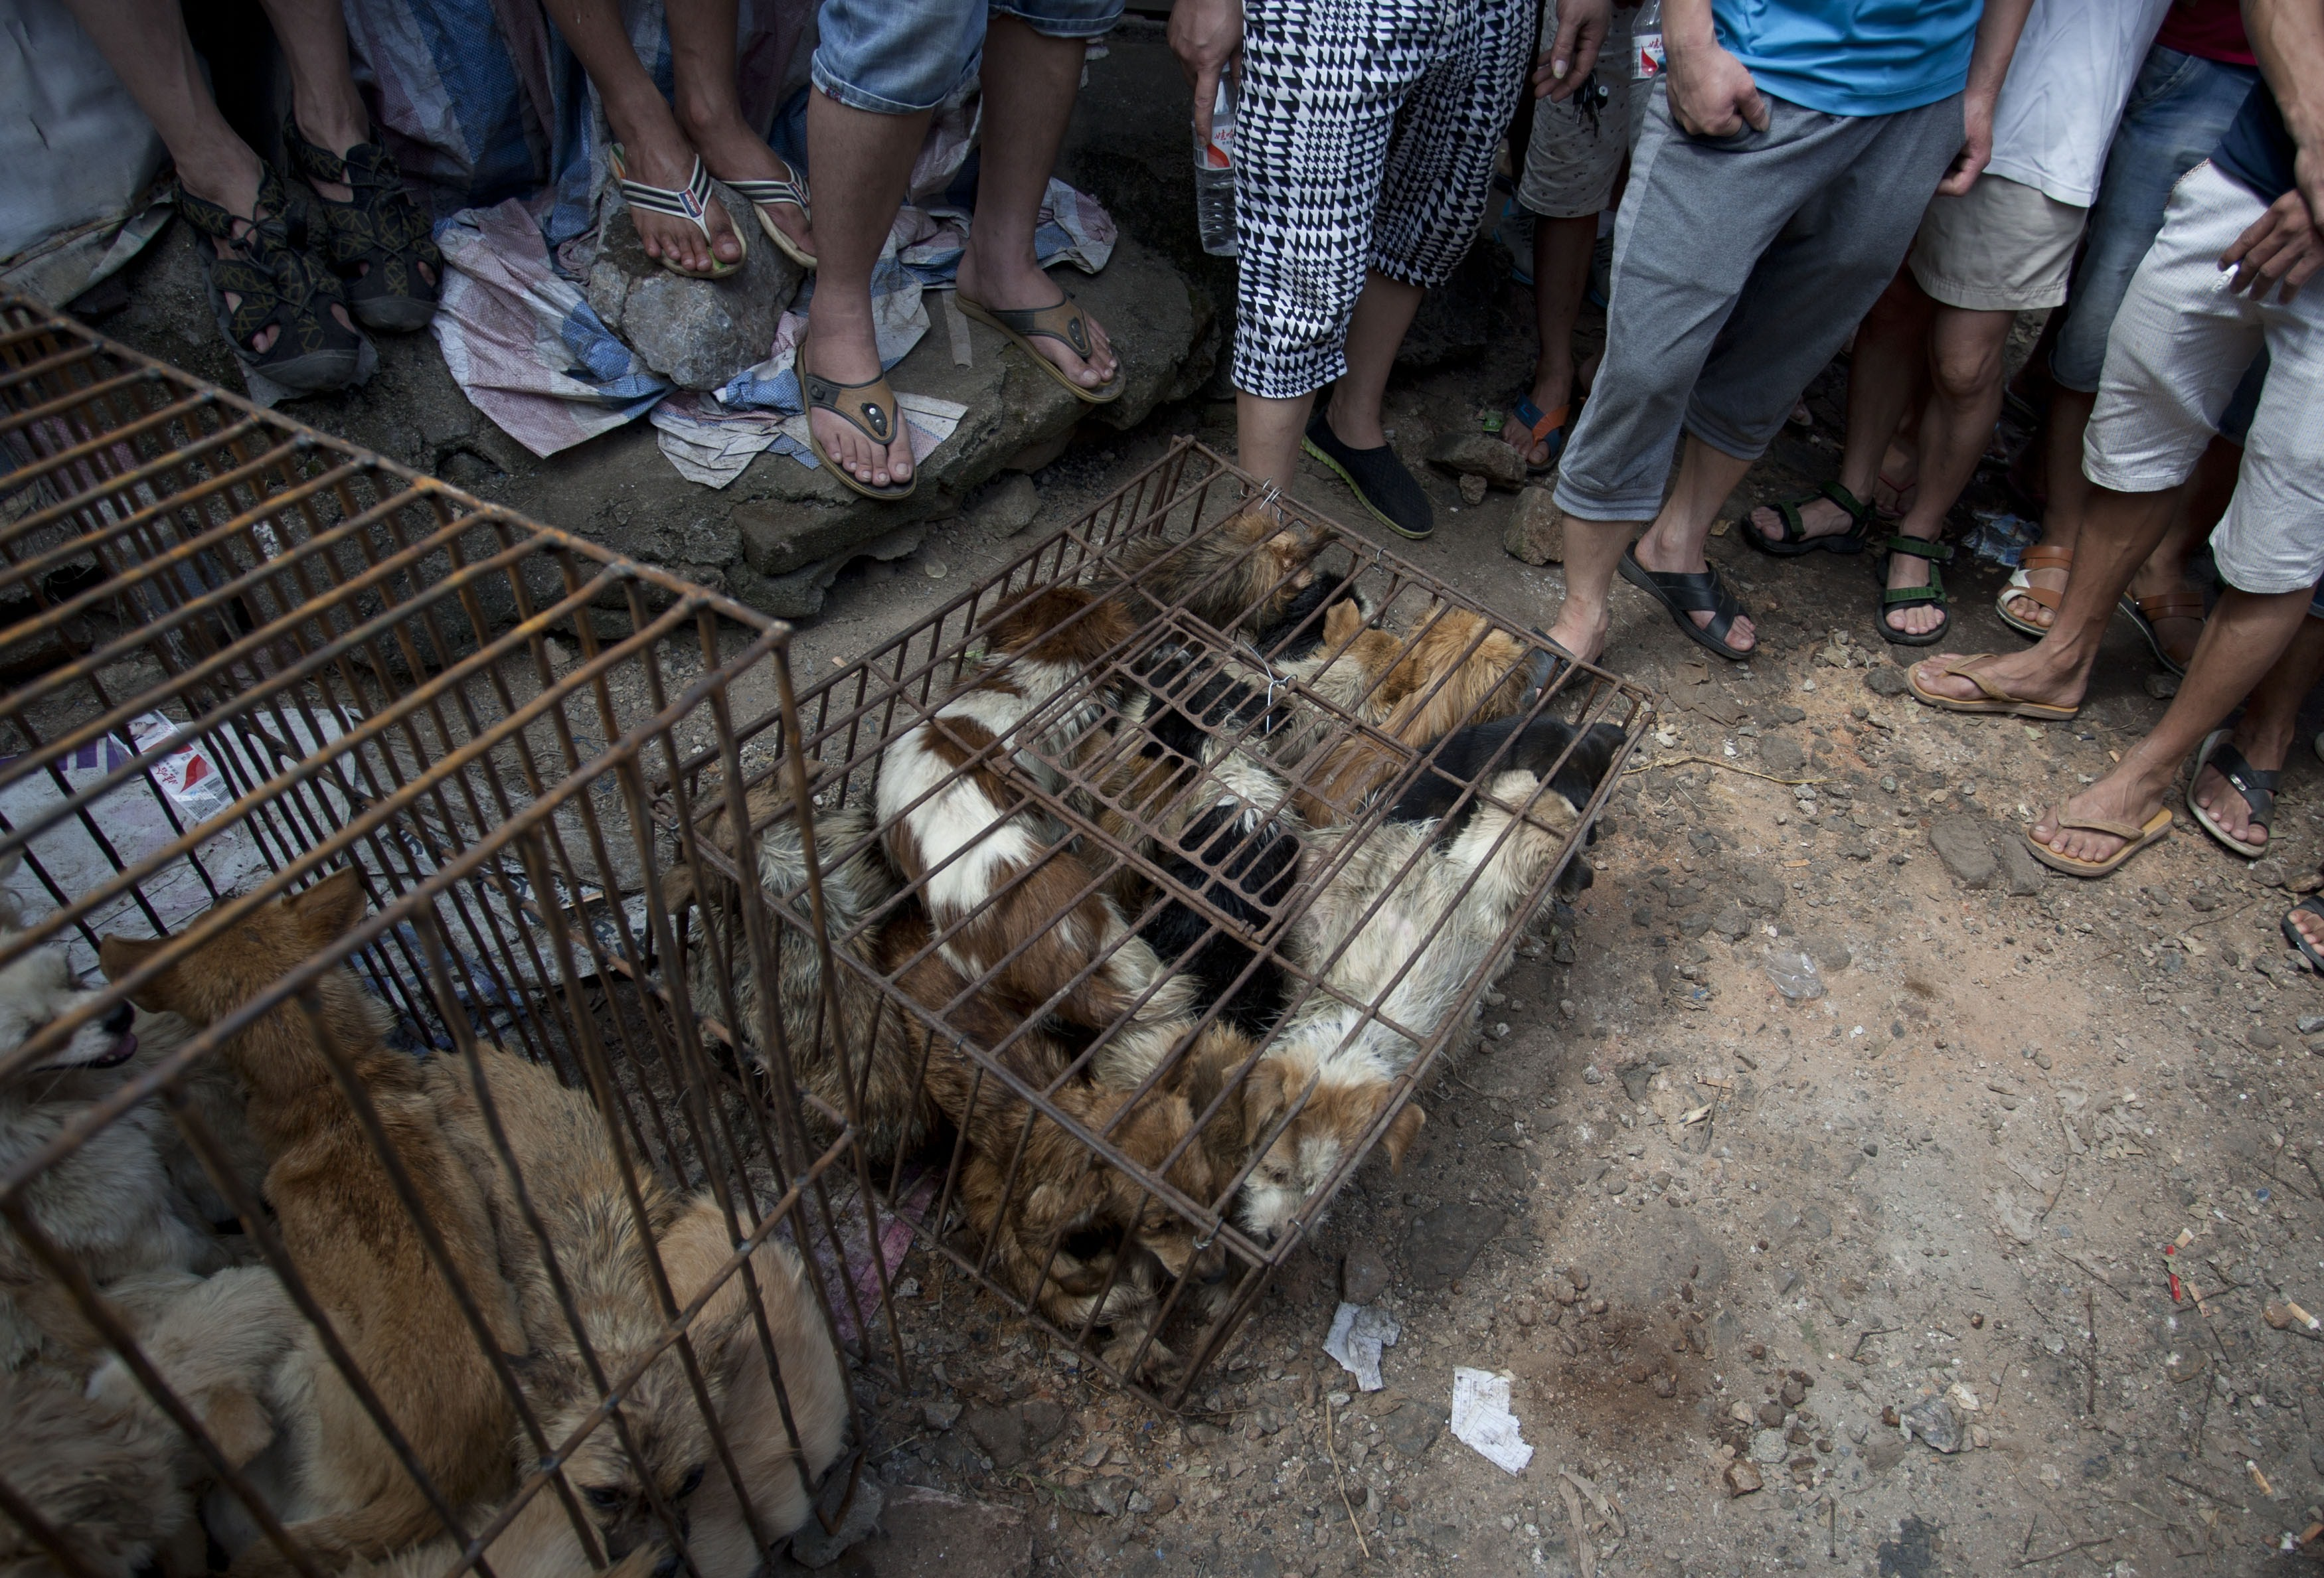 Chinese customers gather around dogs in cages on sale at a market in Yulin, in southern China's Guangxi province on June 21, 2015. (Photo credit should read STR/AFP via Getty Images)